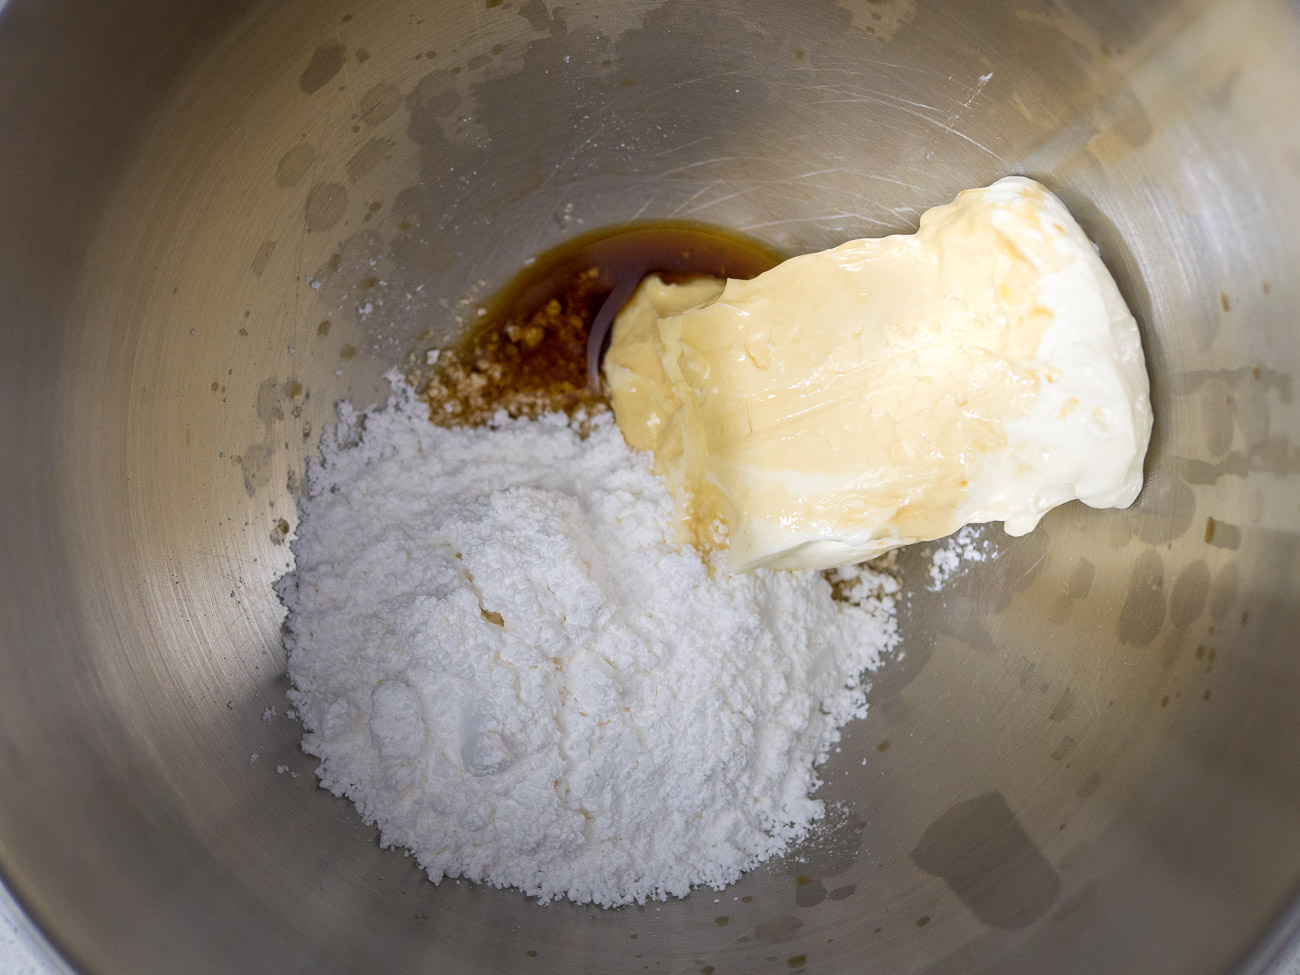 Beat cream cheese, powdered sugar, vanilla extract, and peppermint extract in a large mixing bowl. Gradually add heavy cream and beat until stiff peaks form.